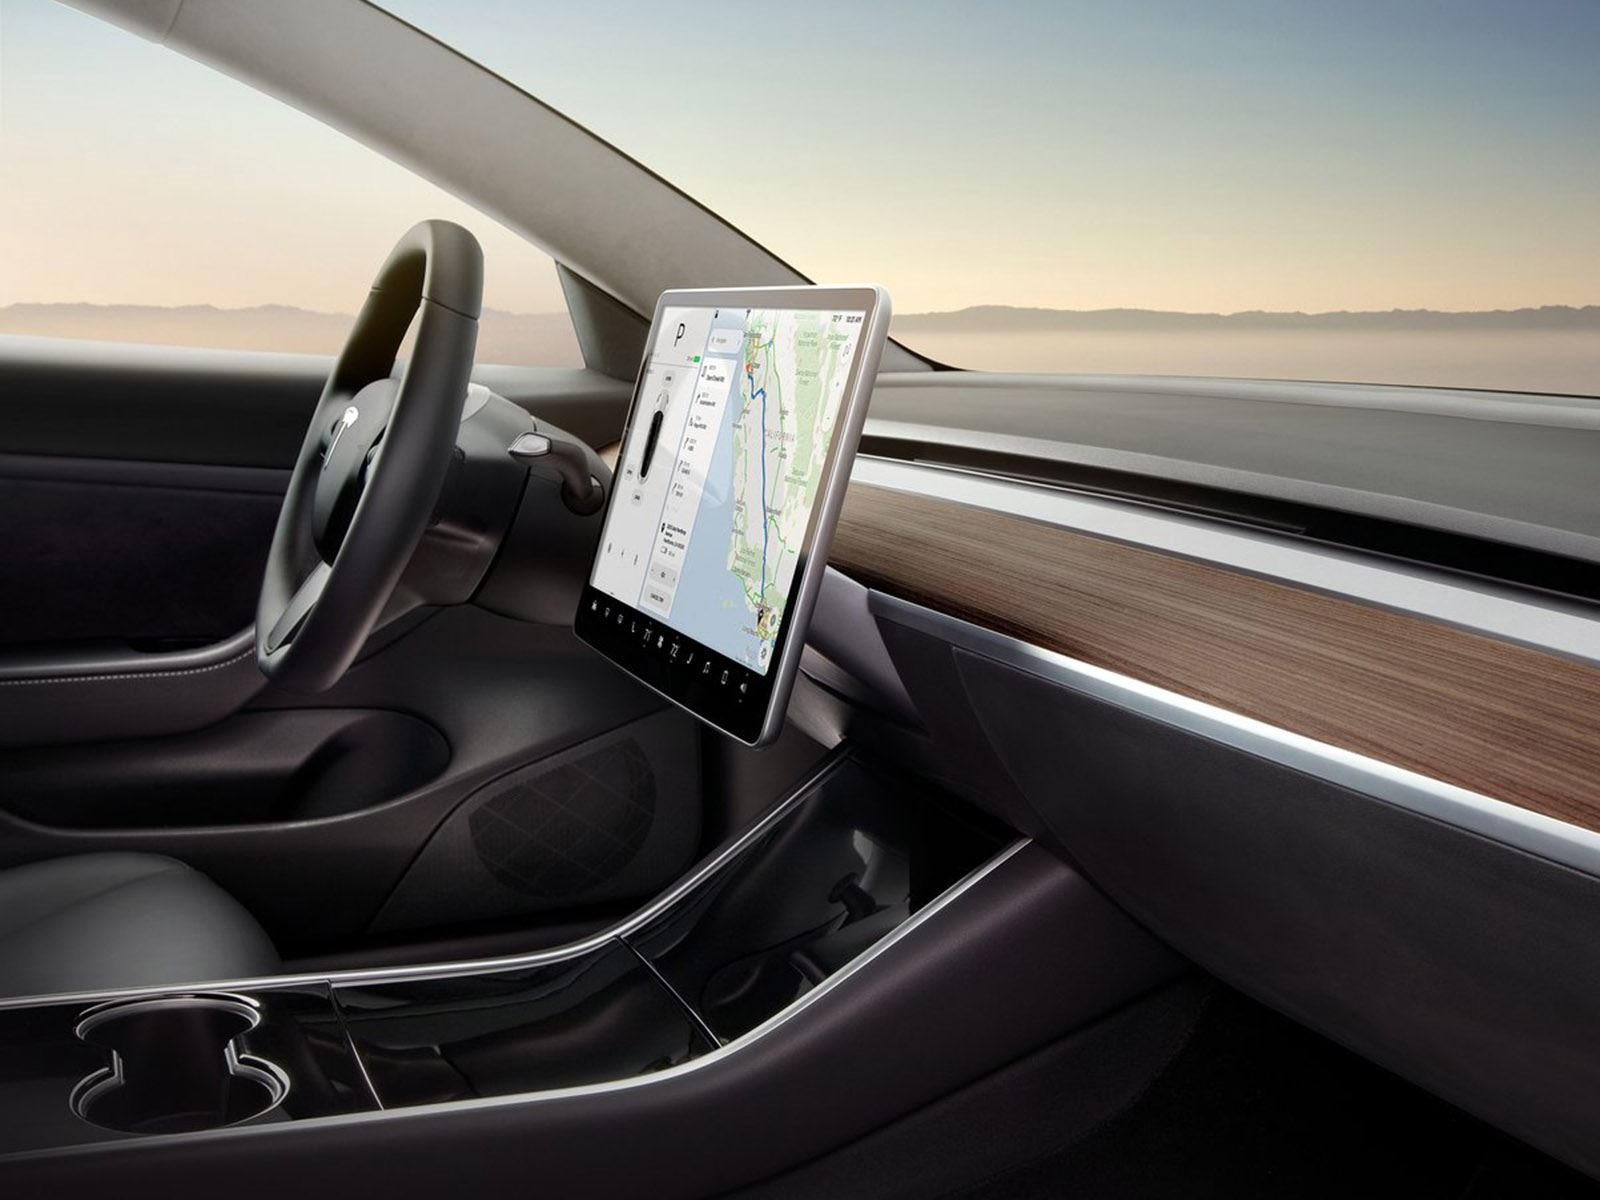 Model 3 Owners Claim Tesla Switched Premium Interior For Cheap Cloth |  CarBuzz